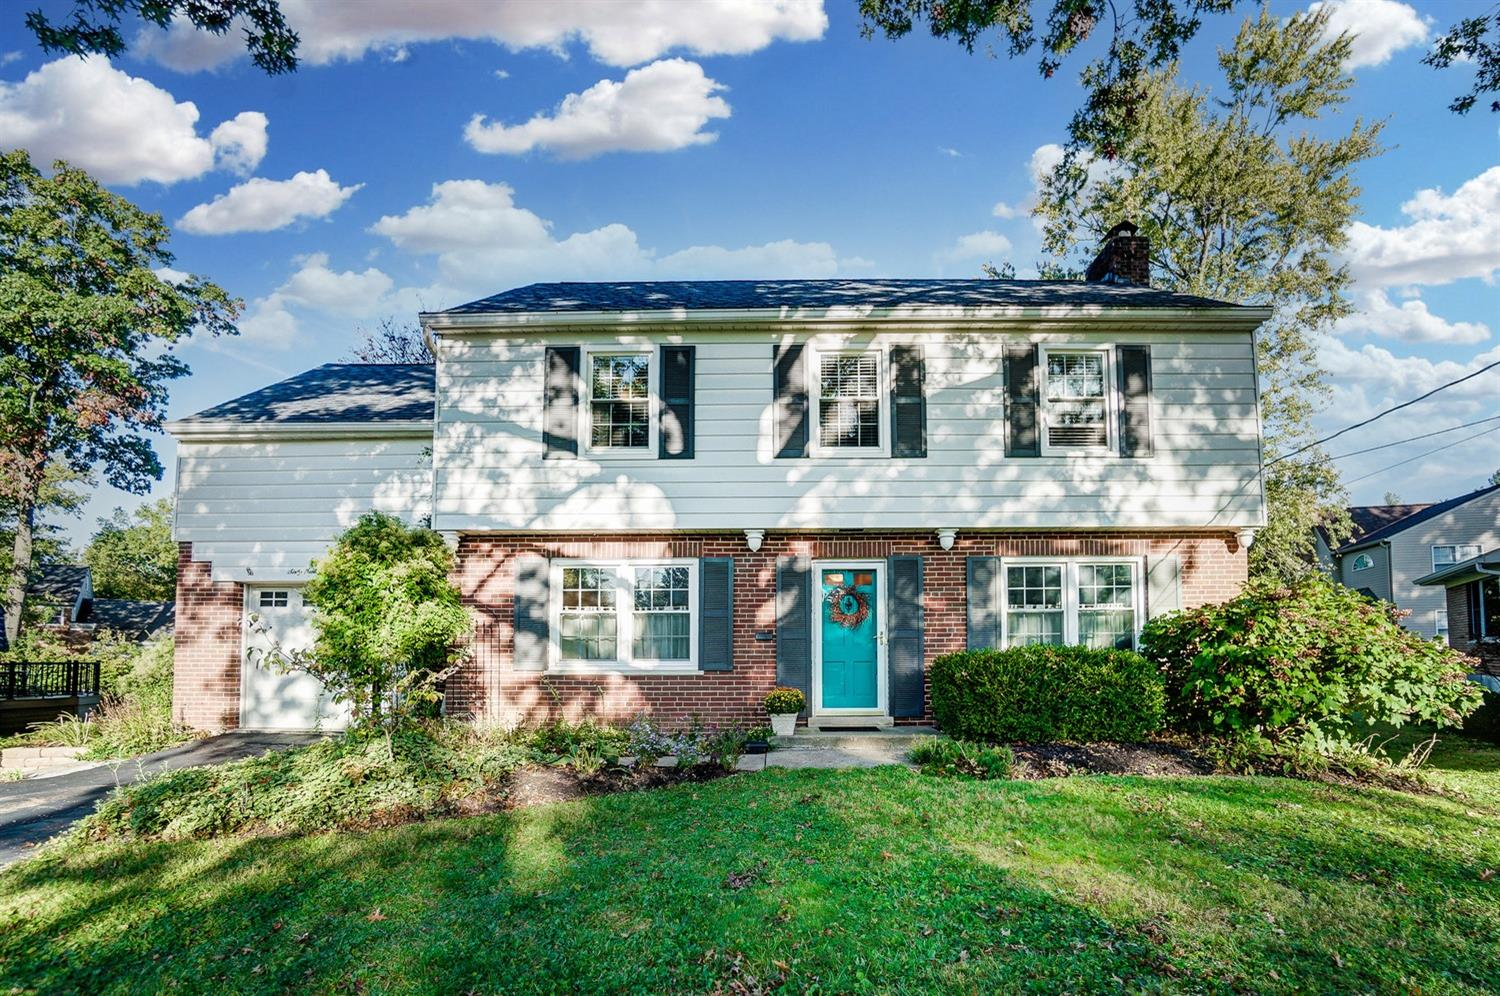 6971 Rosemary Lane, Sycamore Twp, Ohio 45236, 3 Bedrooms Bedrooms, 9 Rooms Rooms,2 BathroomsBathrooms,Single Family Residence,For Sale,Rosemary,1719087